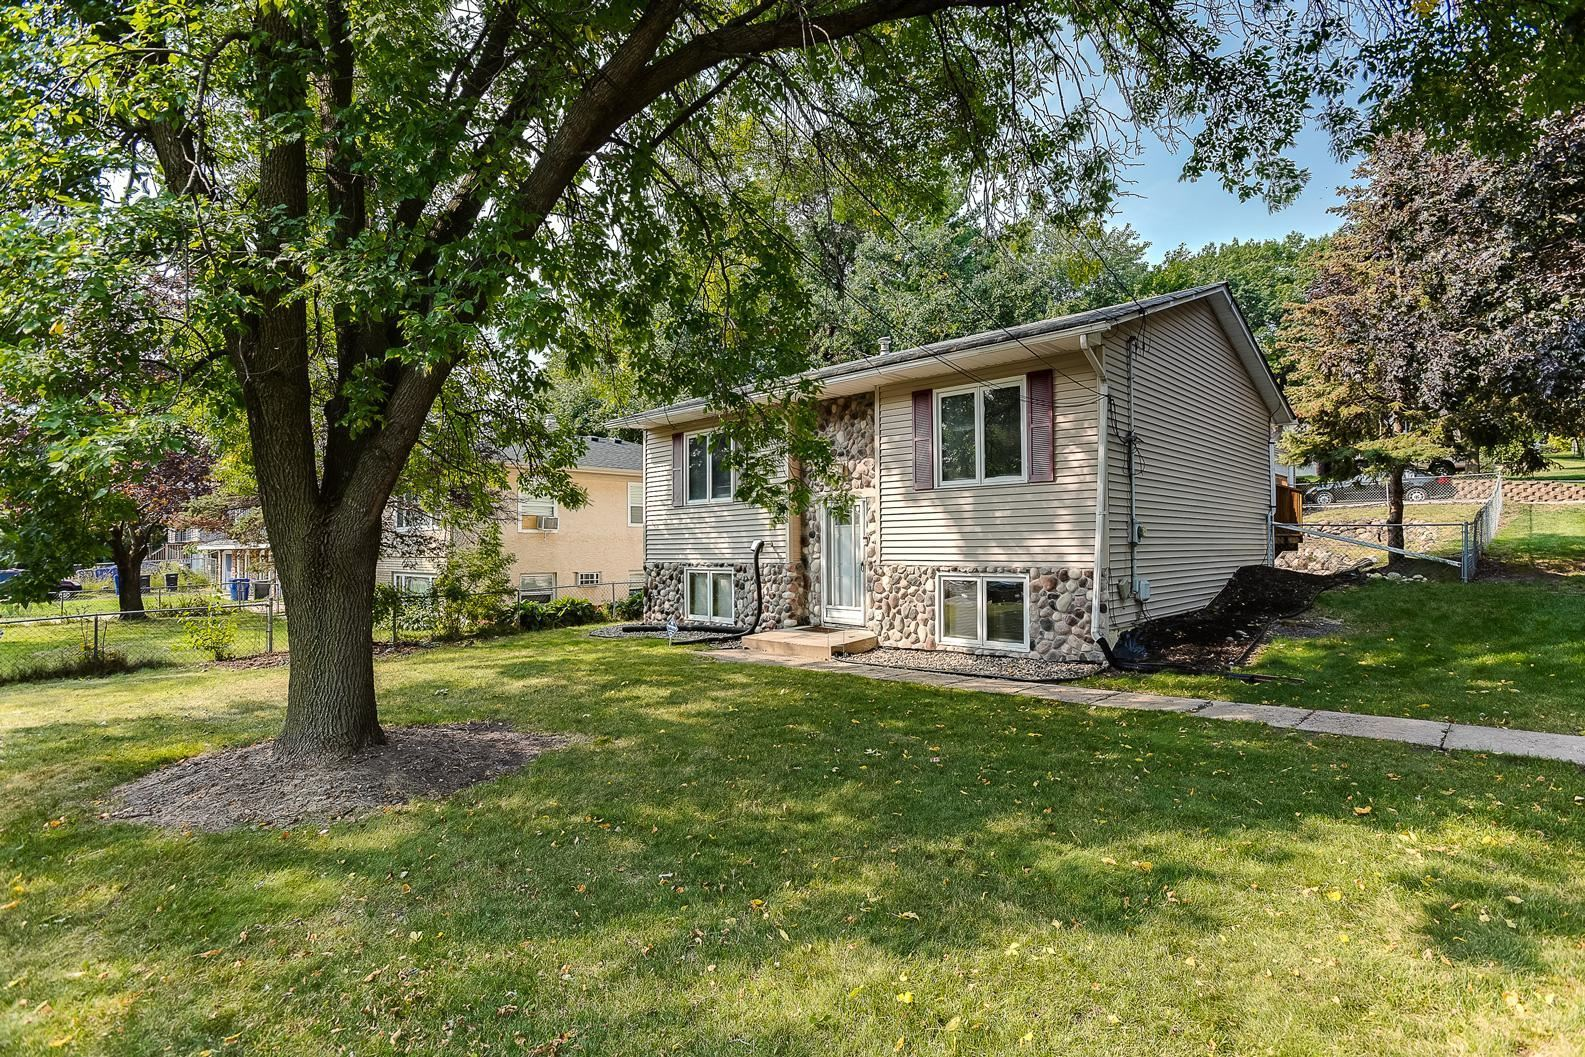 419 Van Dyke Street, Saint Paul, MN 55119 - MLS#: 5630424